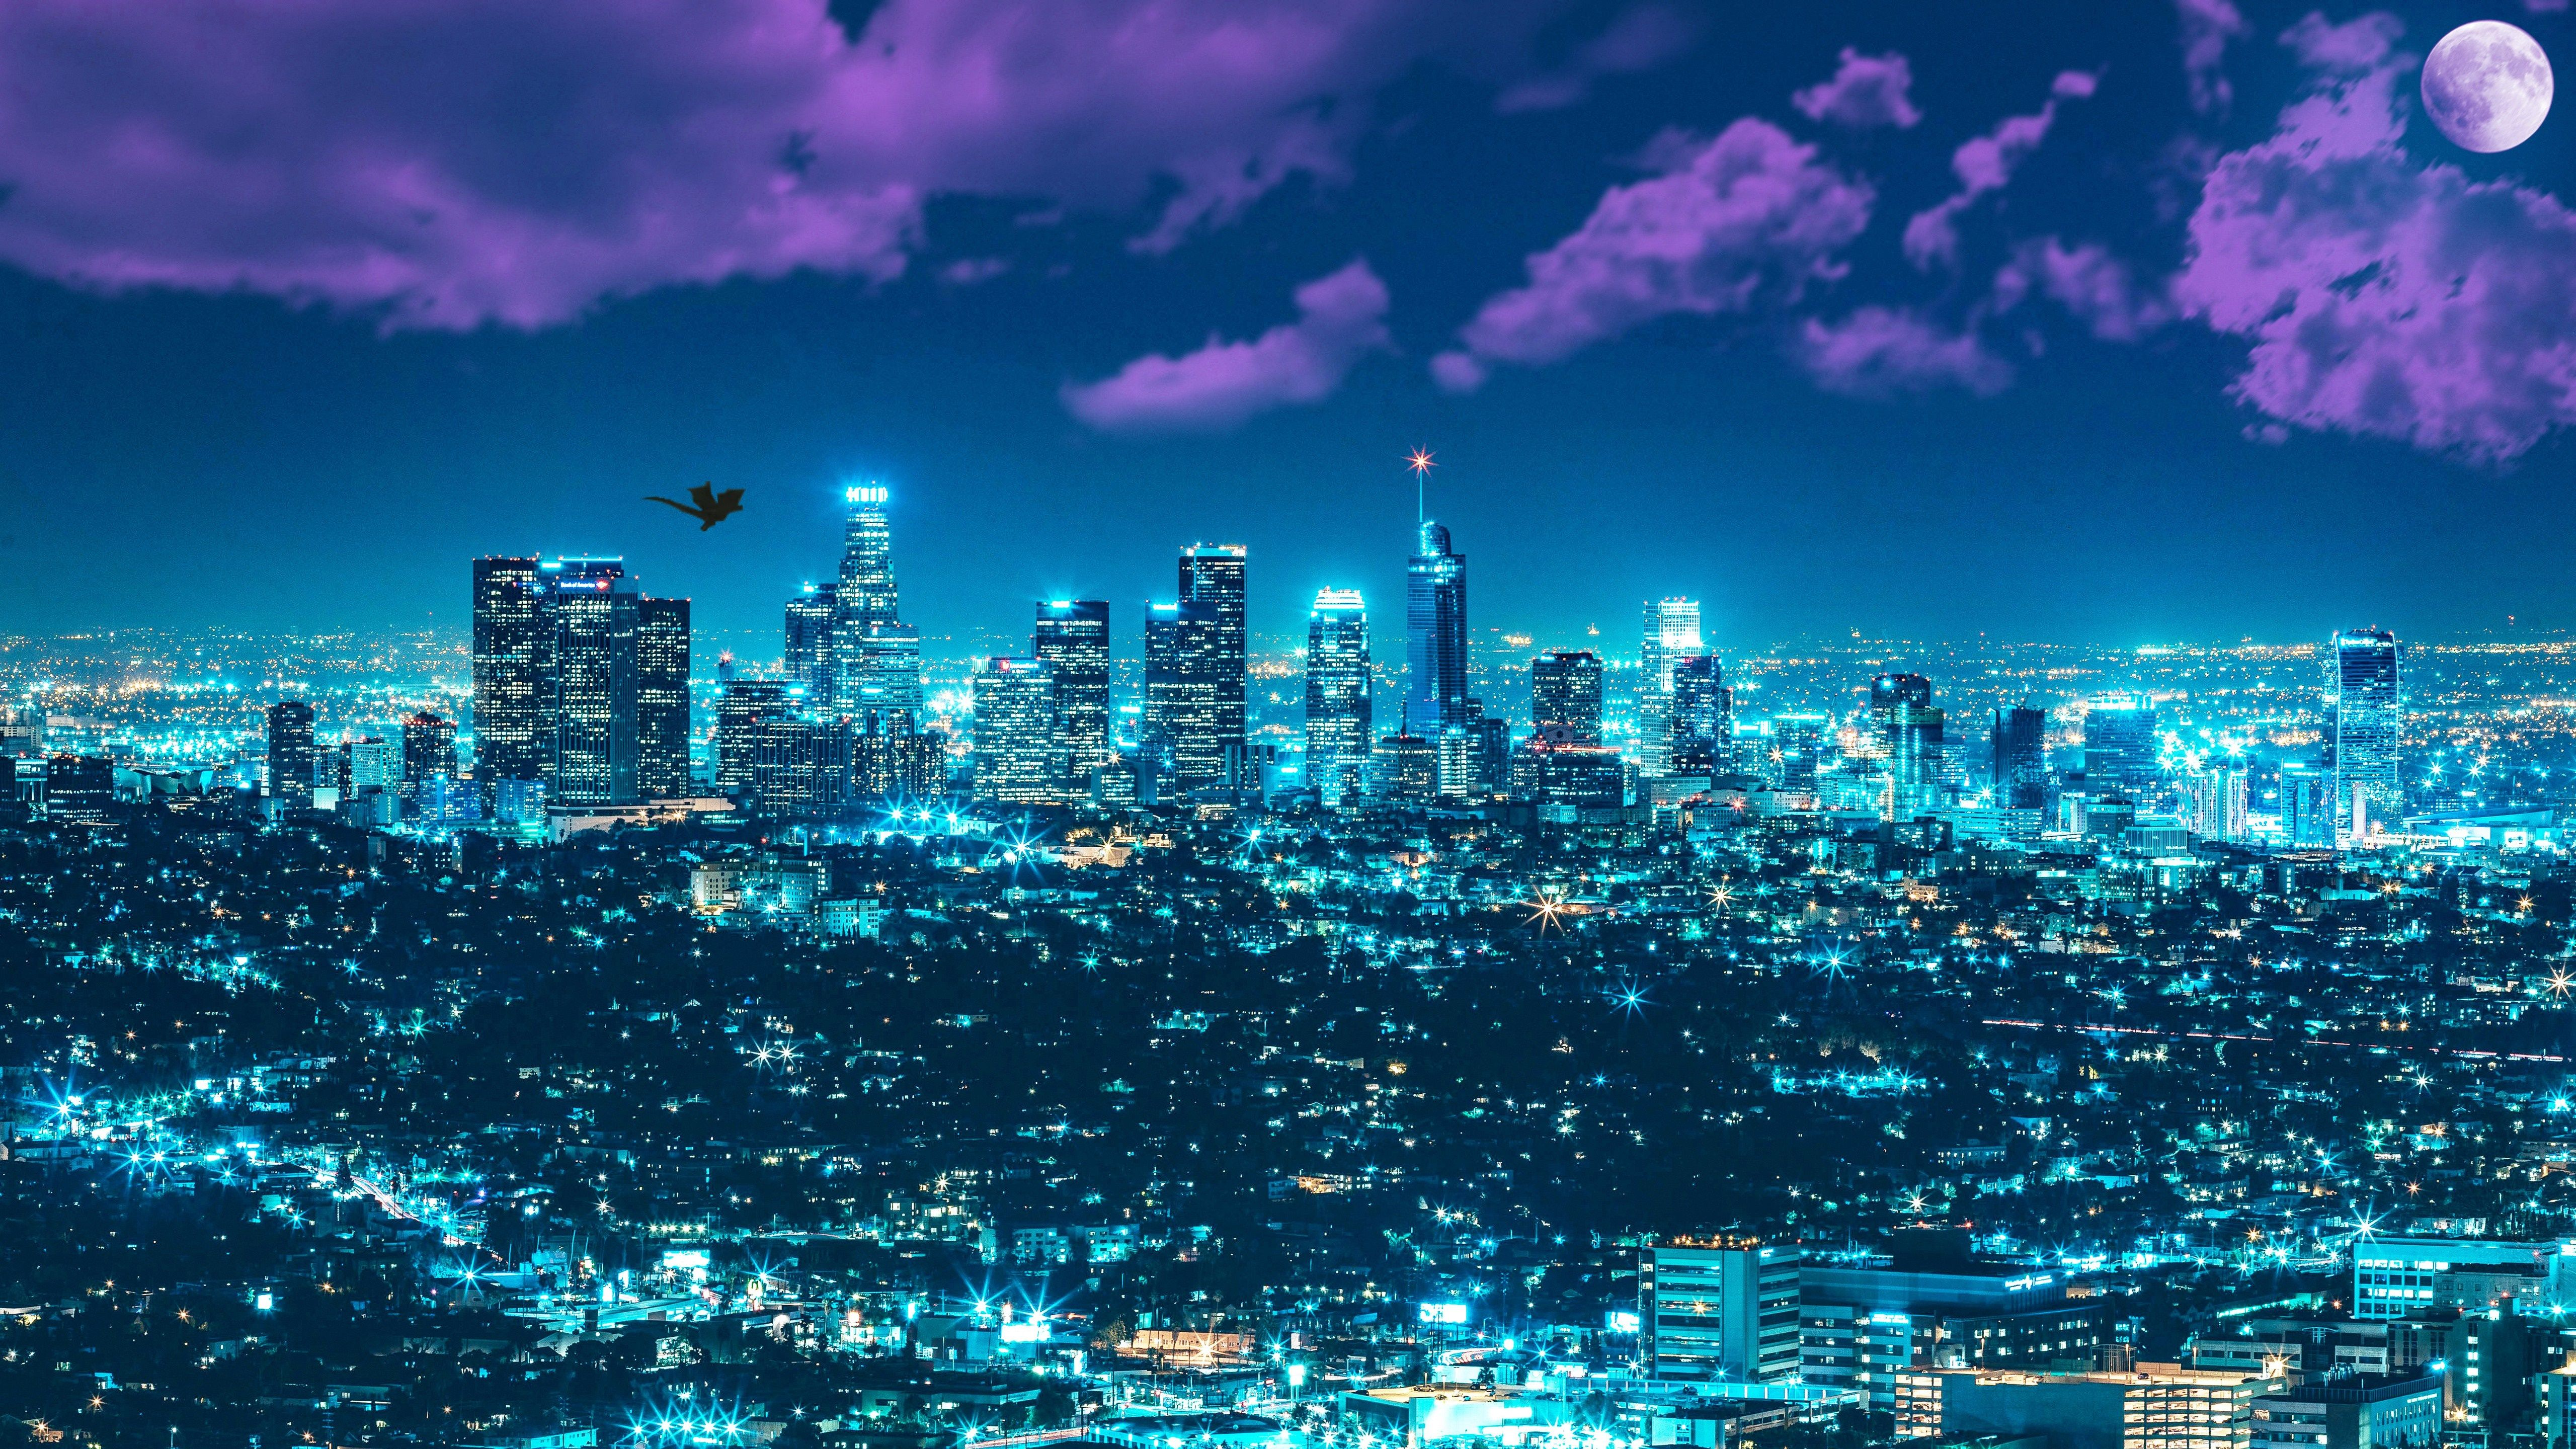 Los Angeles City Wallpapers Top Free Los Angeles City Backgrounds